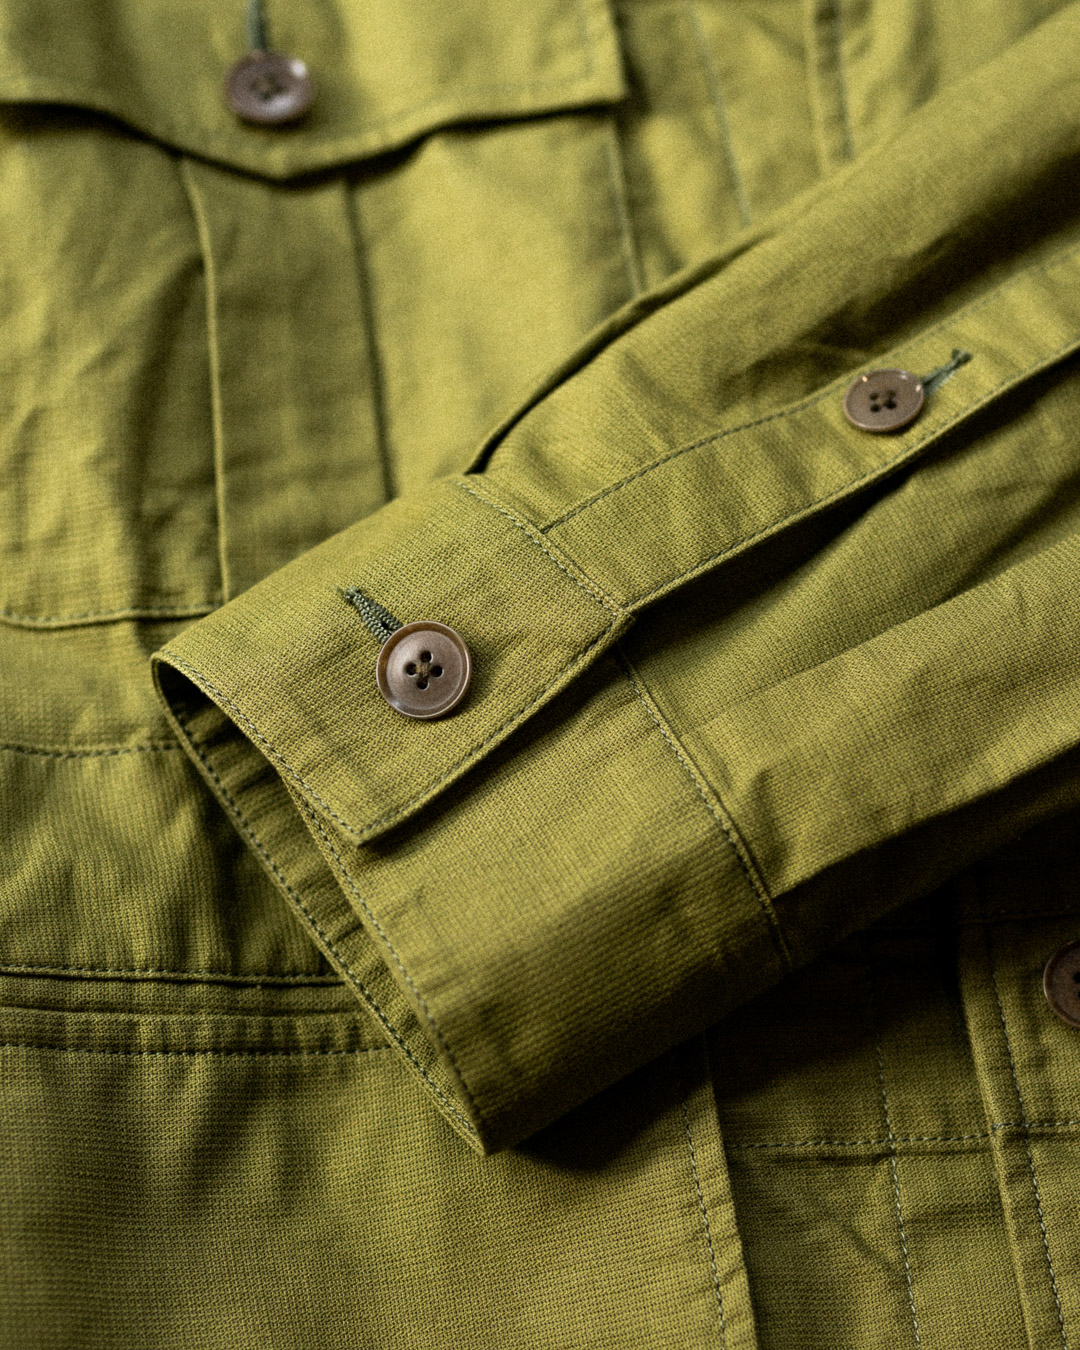 SOUNDMAN 643M-906N WHITBY JACKET OLIVE - CLUTCH CAFE  LONDON